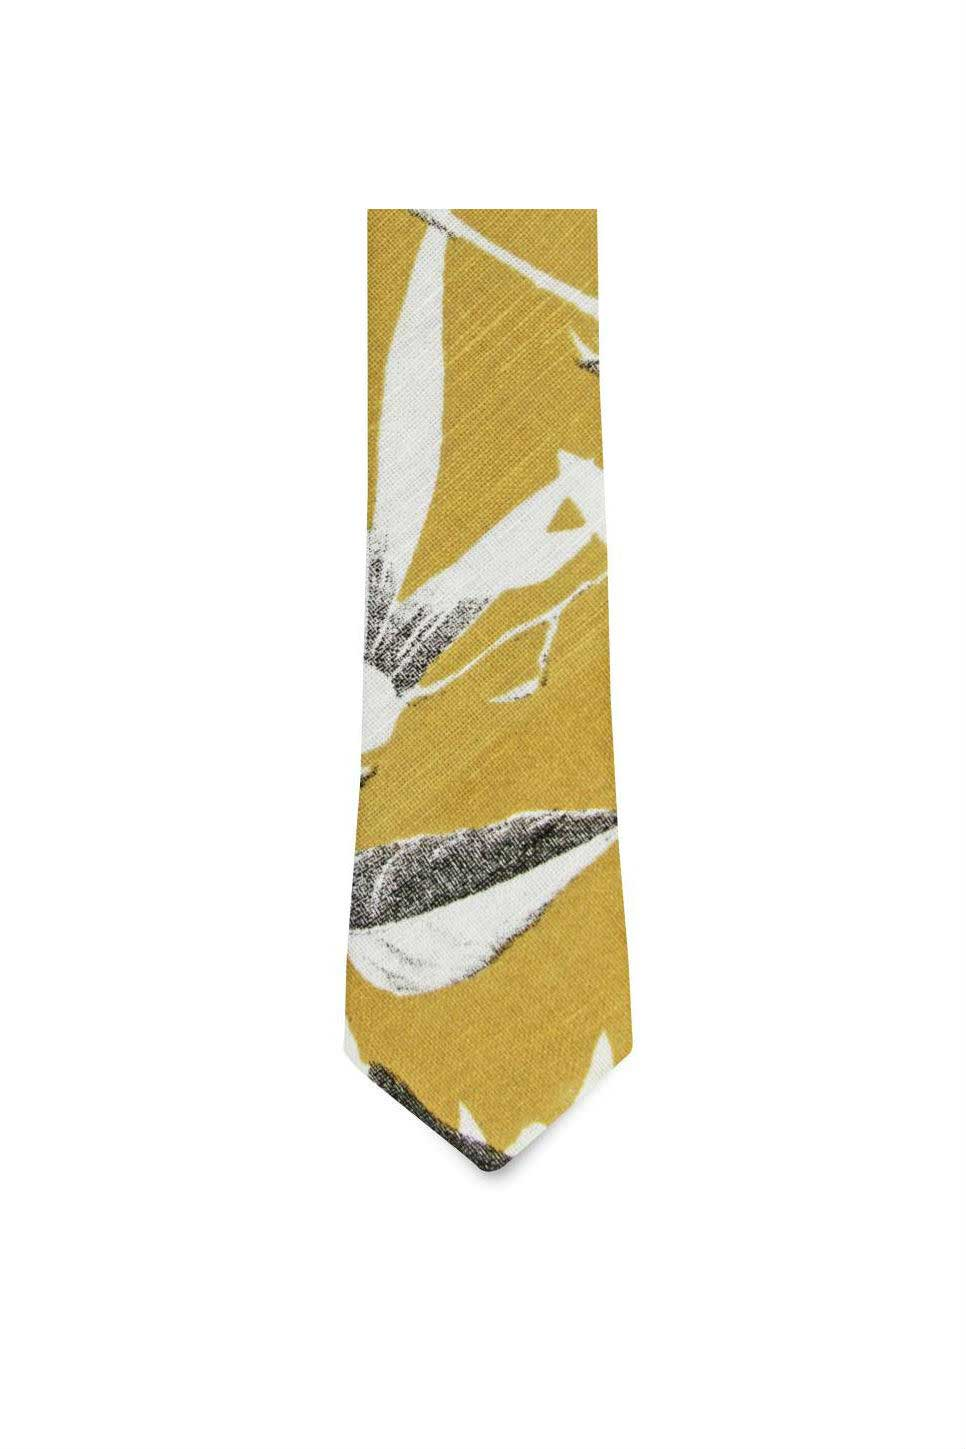 ODESSA FLORAL TIE Yellow